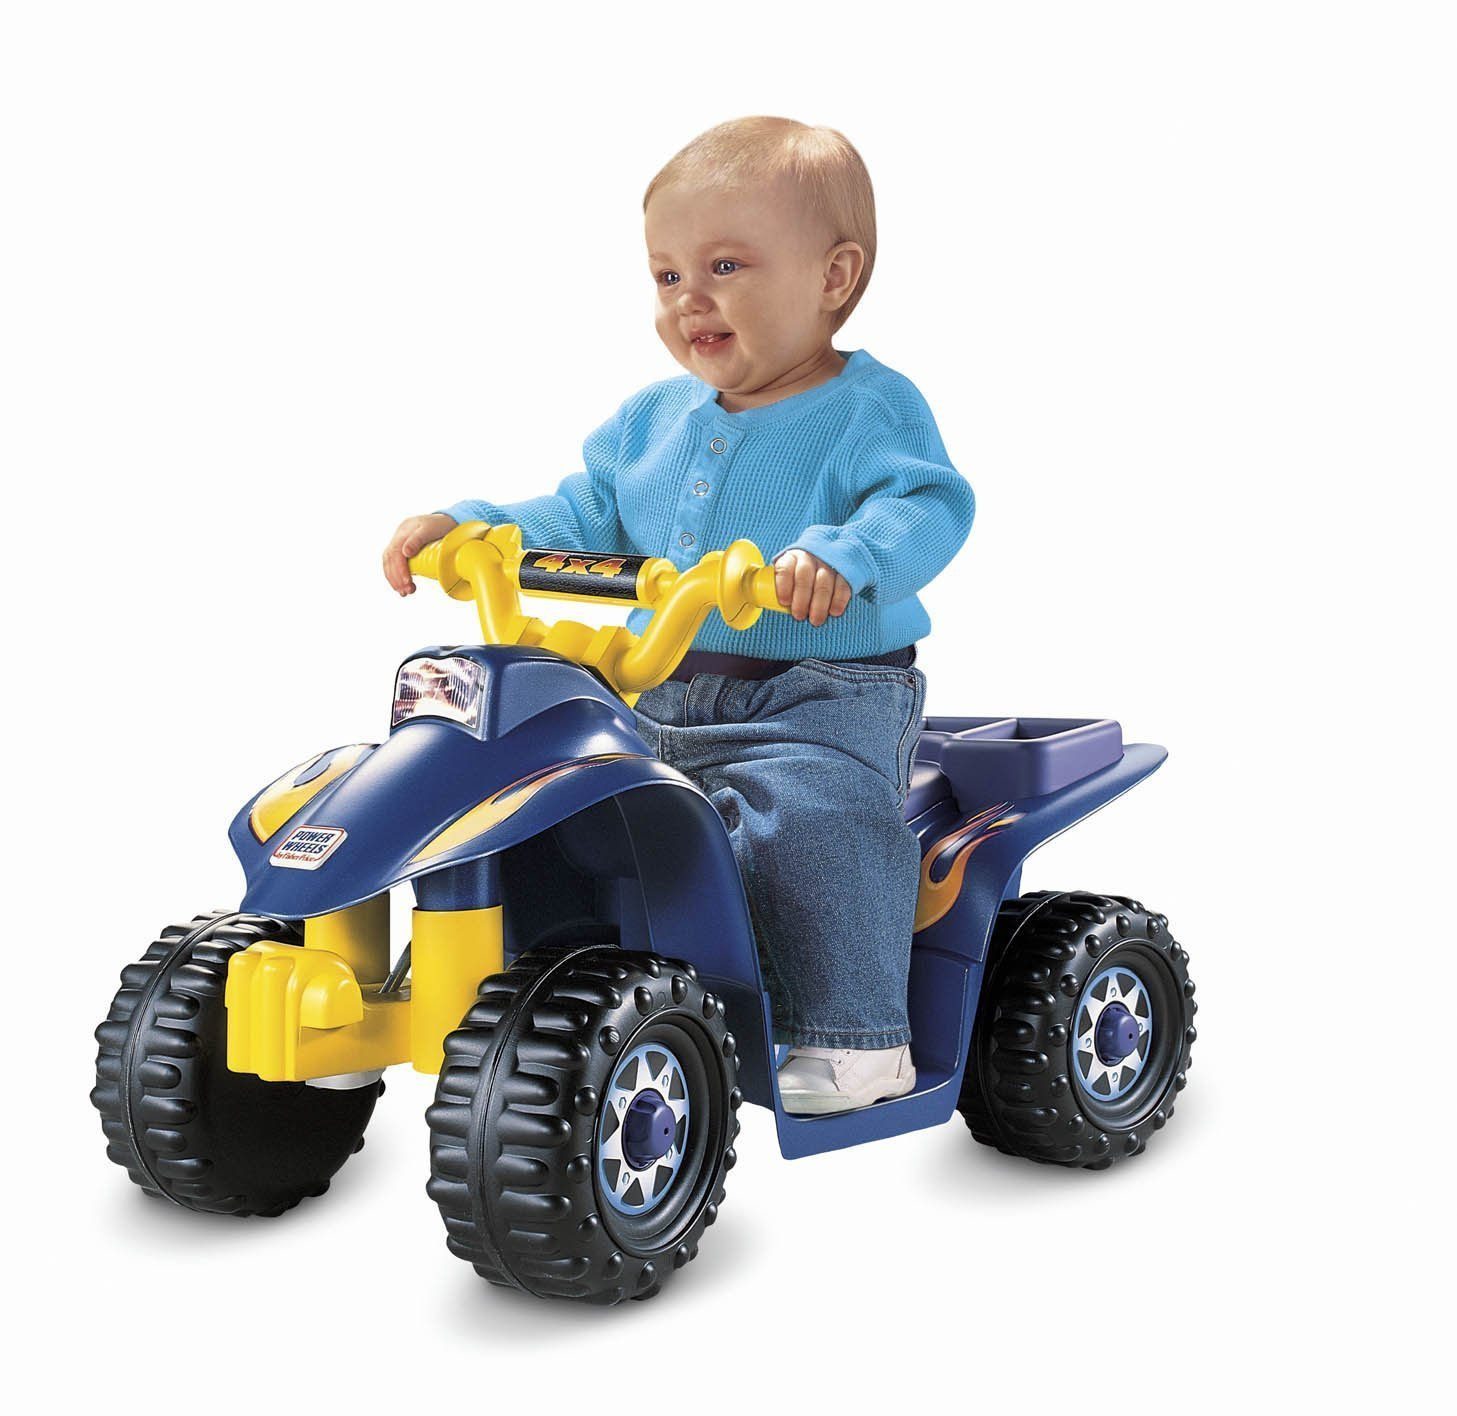 Get up to 40% off Power Wheels toys on Amazon today